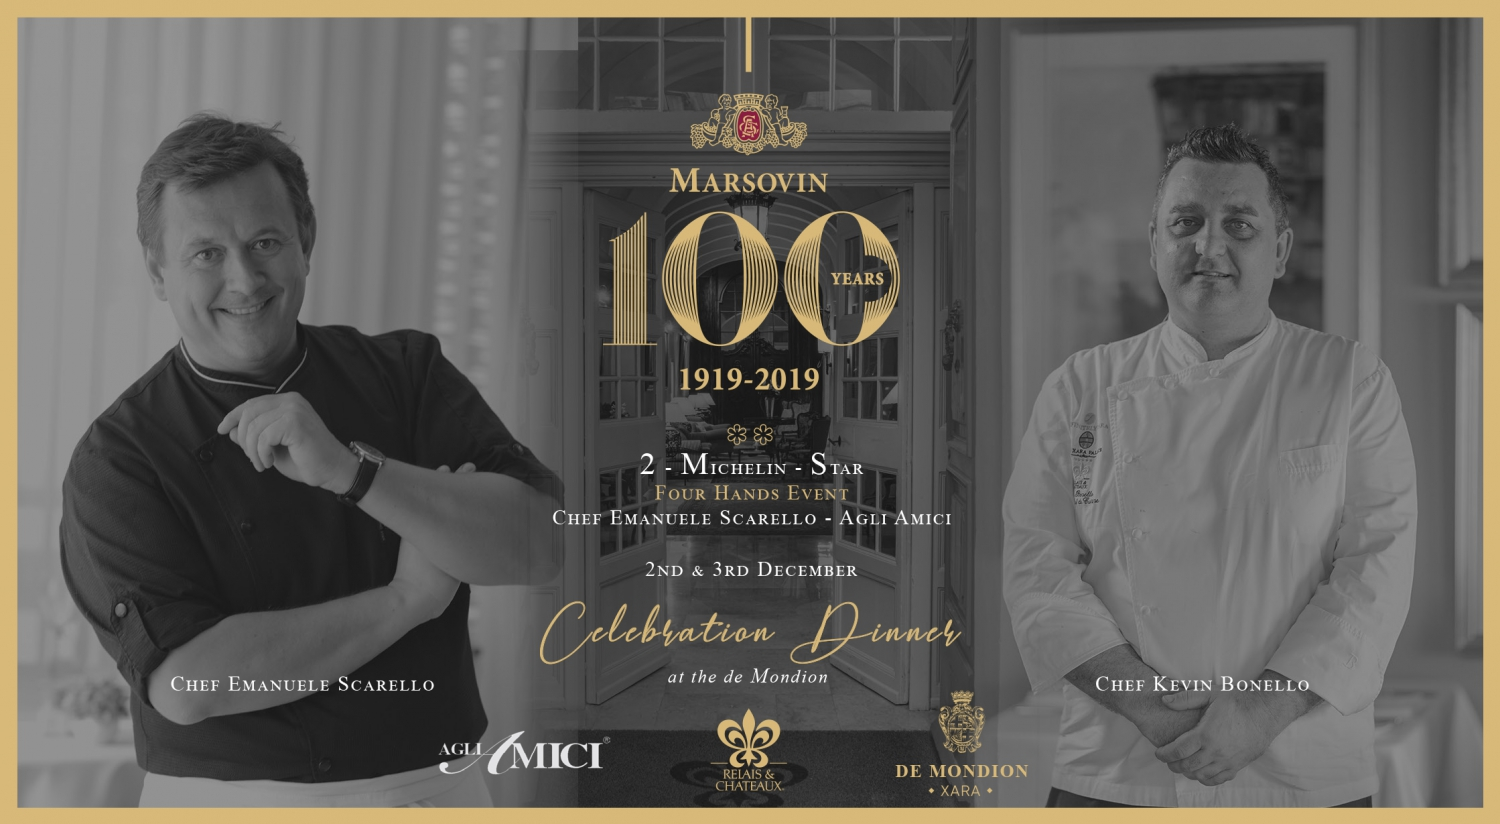 Marsovin 100th Anniversary Celebration Dinner